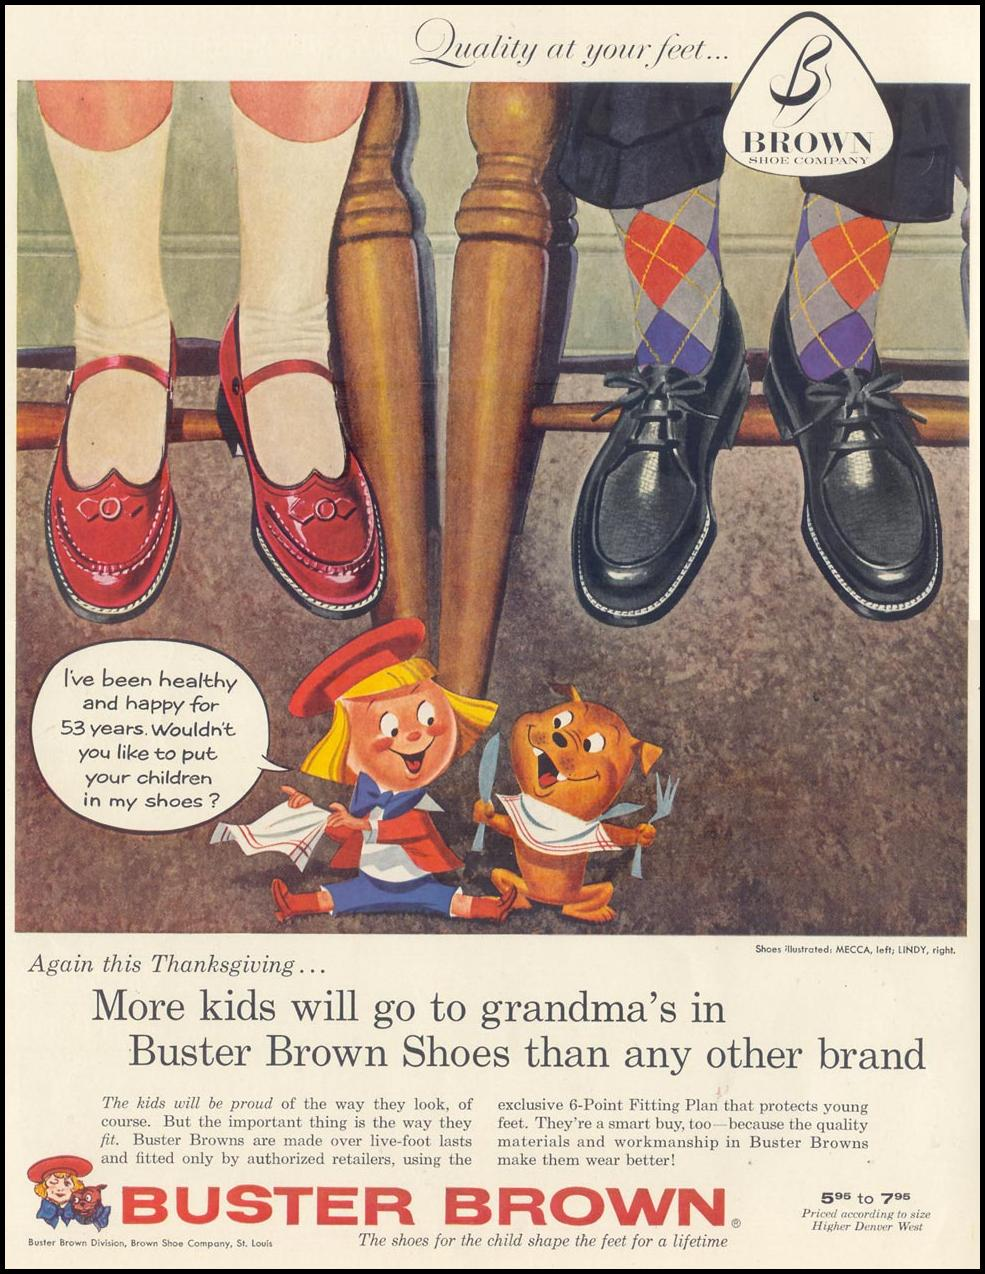 BUSTER BROWN SHOES LIFE 11/11/1957 INSIDE FRONT